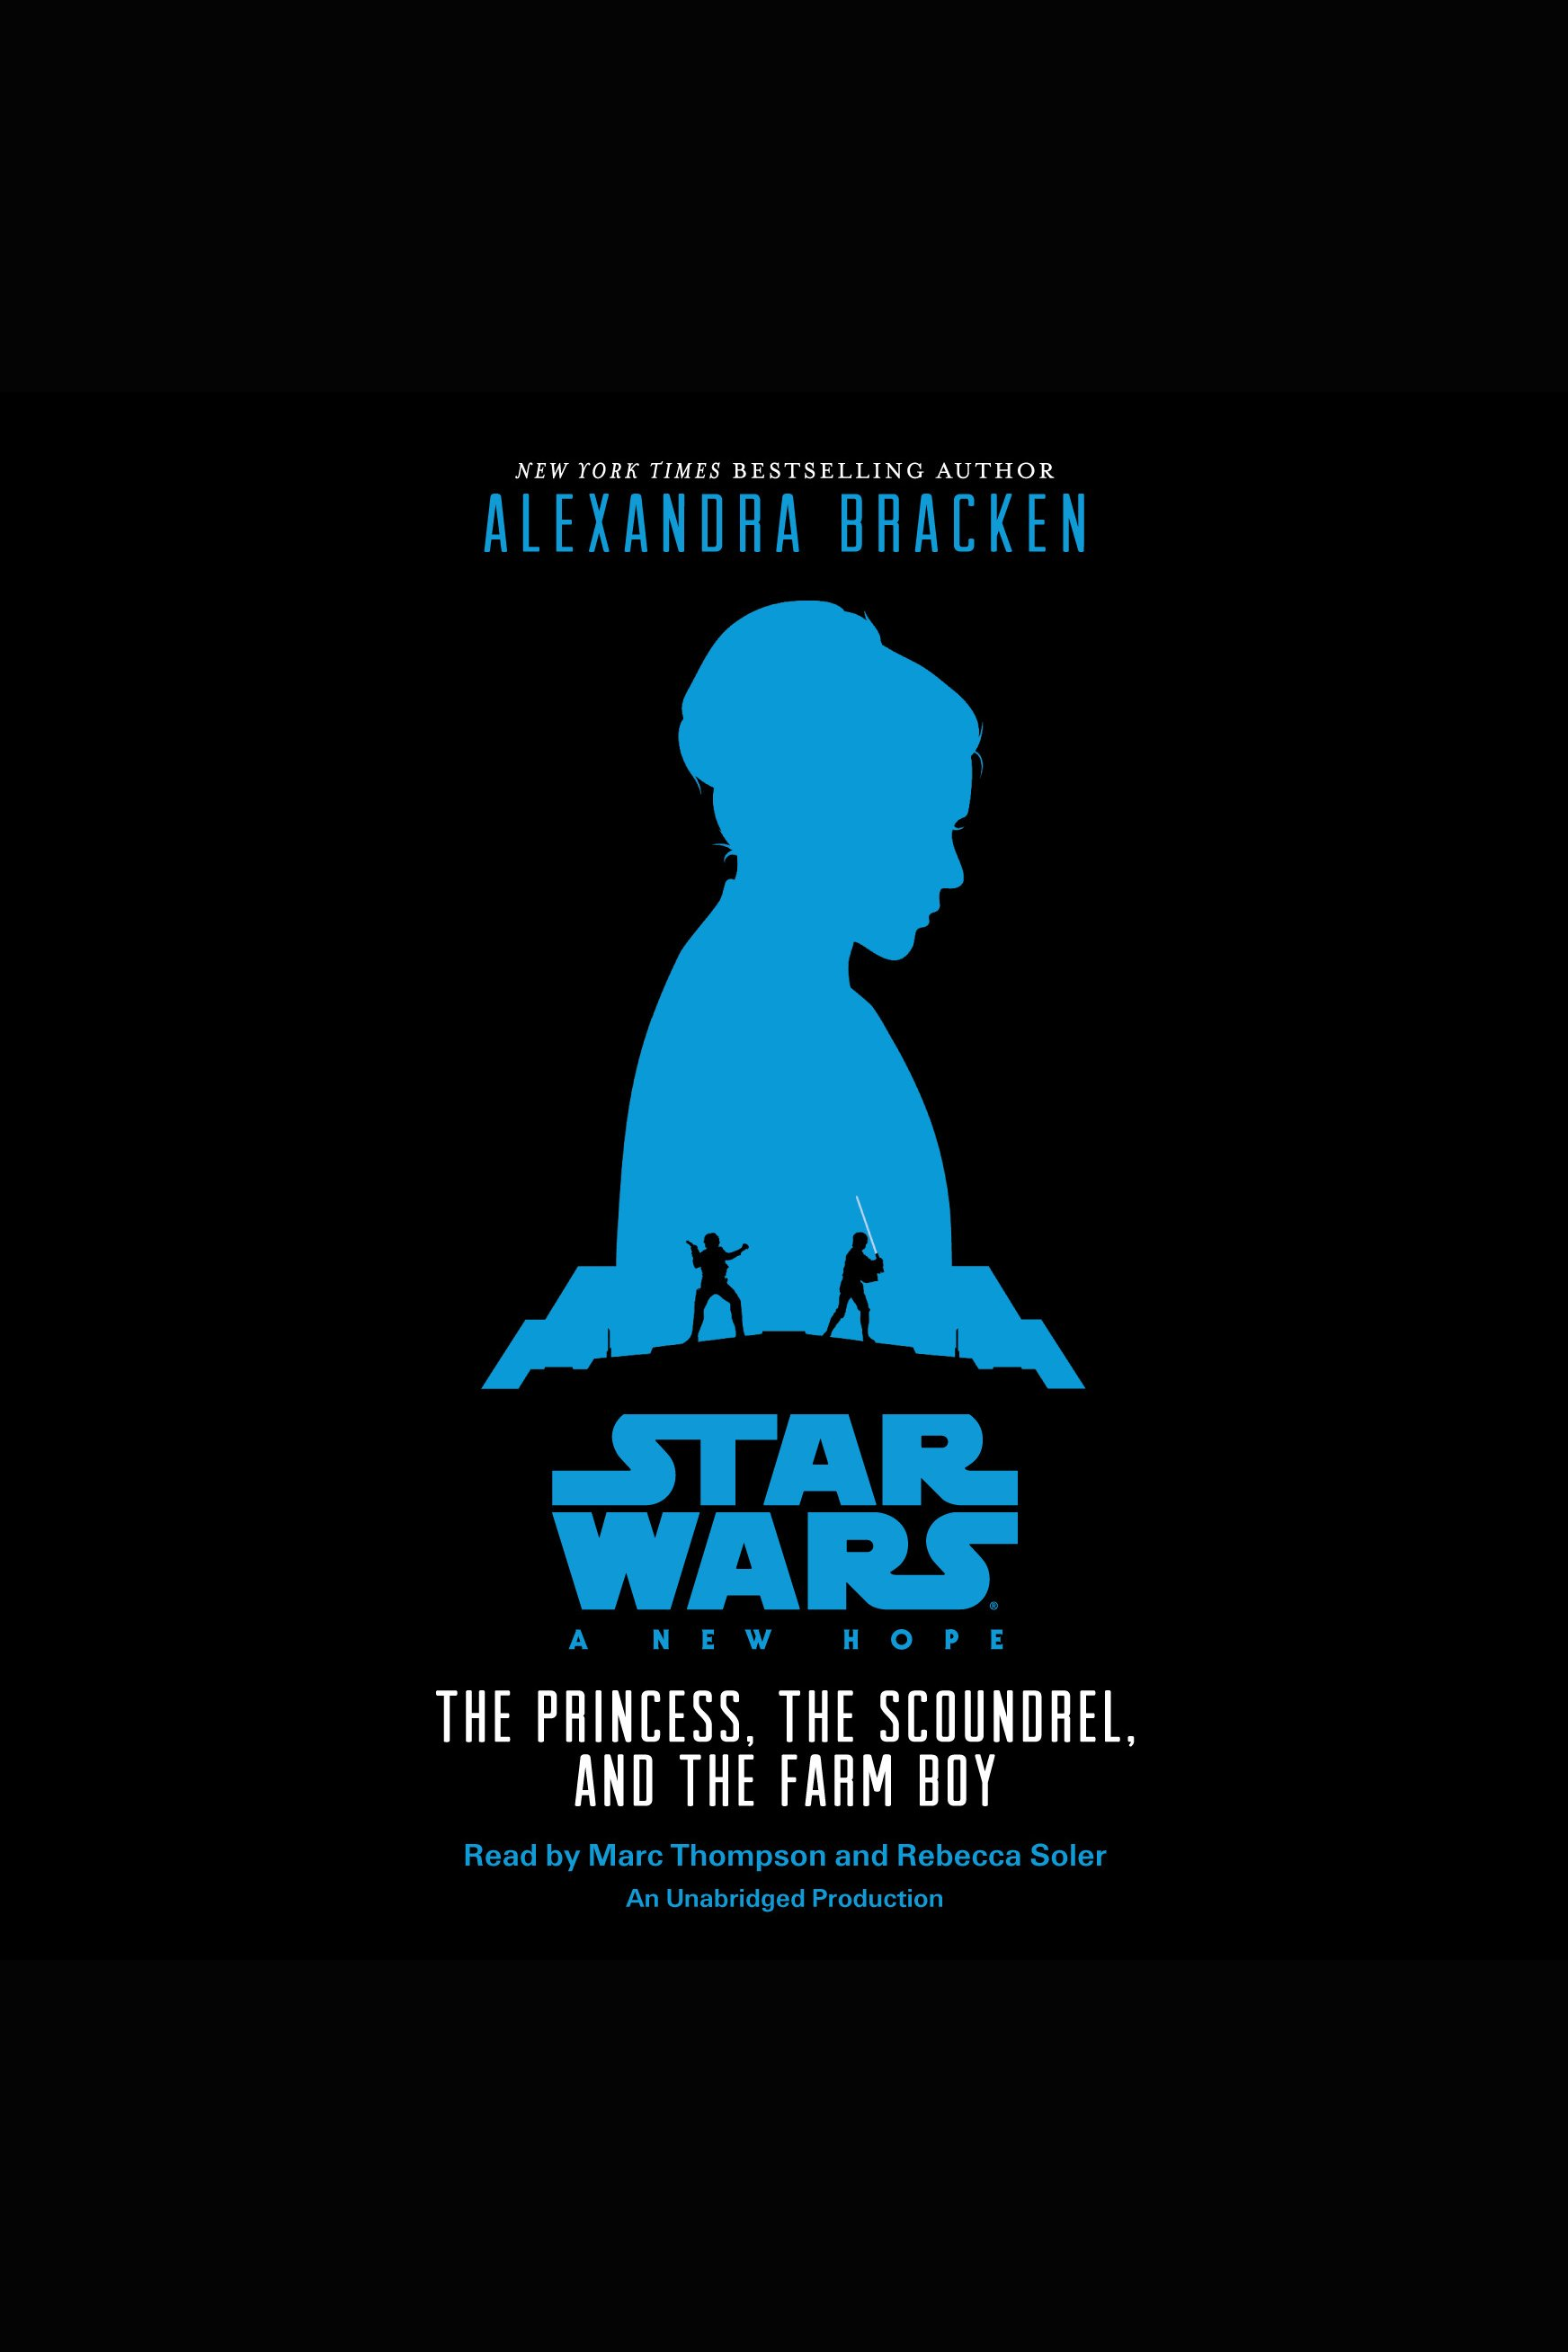 The princess, the scoundrel, and the farm boy  an original retelling of Star Wars: a new hope cover image